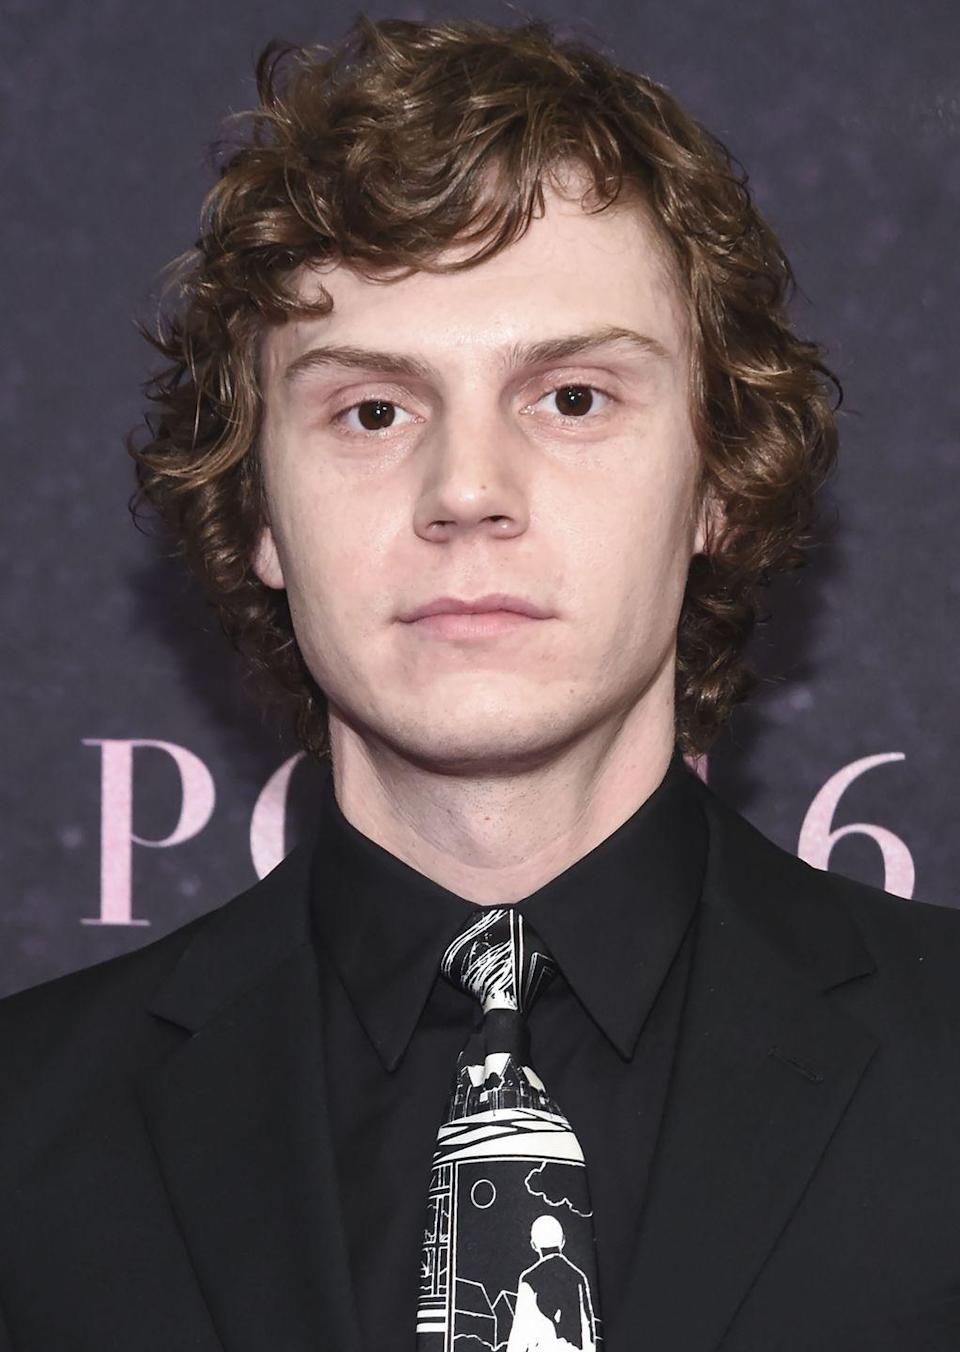 <p>Evan Peters is best known for his work on <em>American Horror Story</em>, for playing Quicksilver in the X-Men franchise<em>,</em> and for his messy brown hair.</p>